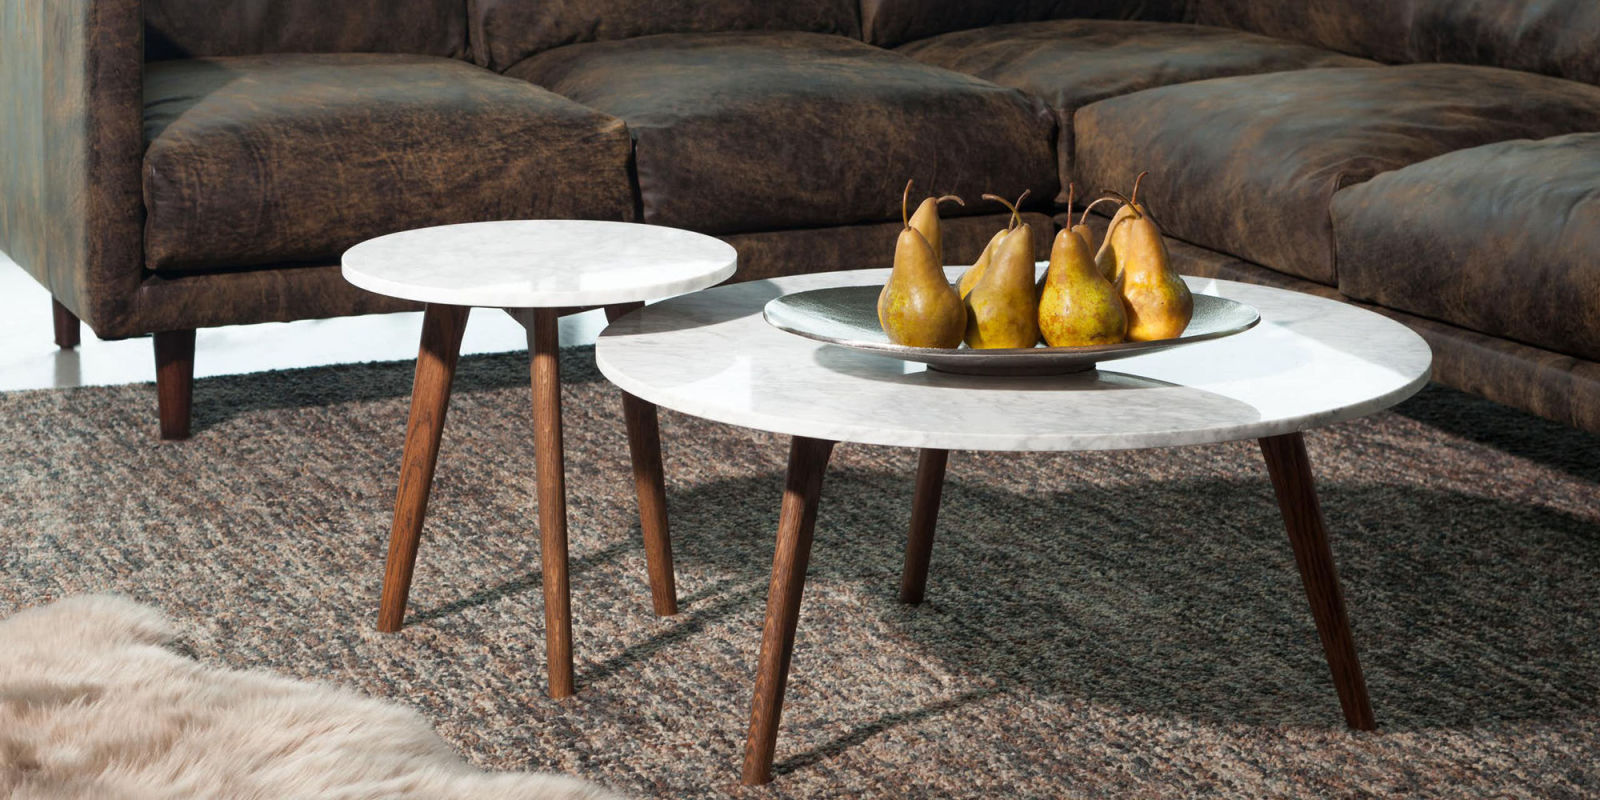 11 best round coffee tables for you living room in 2018 wood 11 best round coffee tables for you living room in 2018 wood glass round coffee tables geotapseo Images